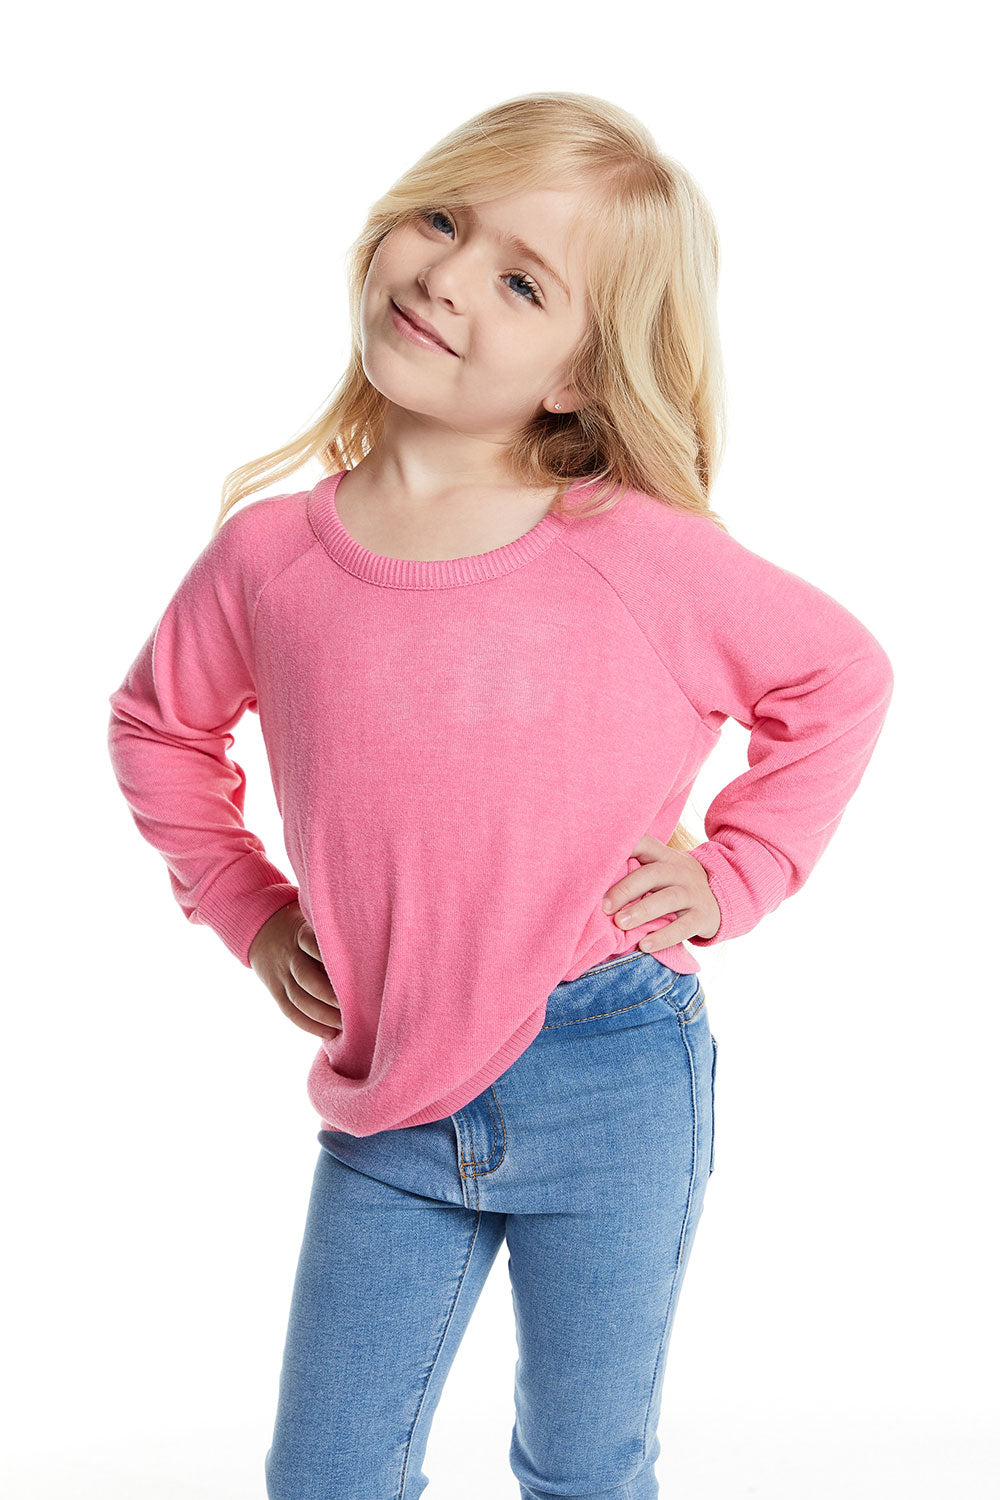 Girls Love Knit Long Sleeve Scoop Back Pullover BCA chaserbrand4.myshopify.com